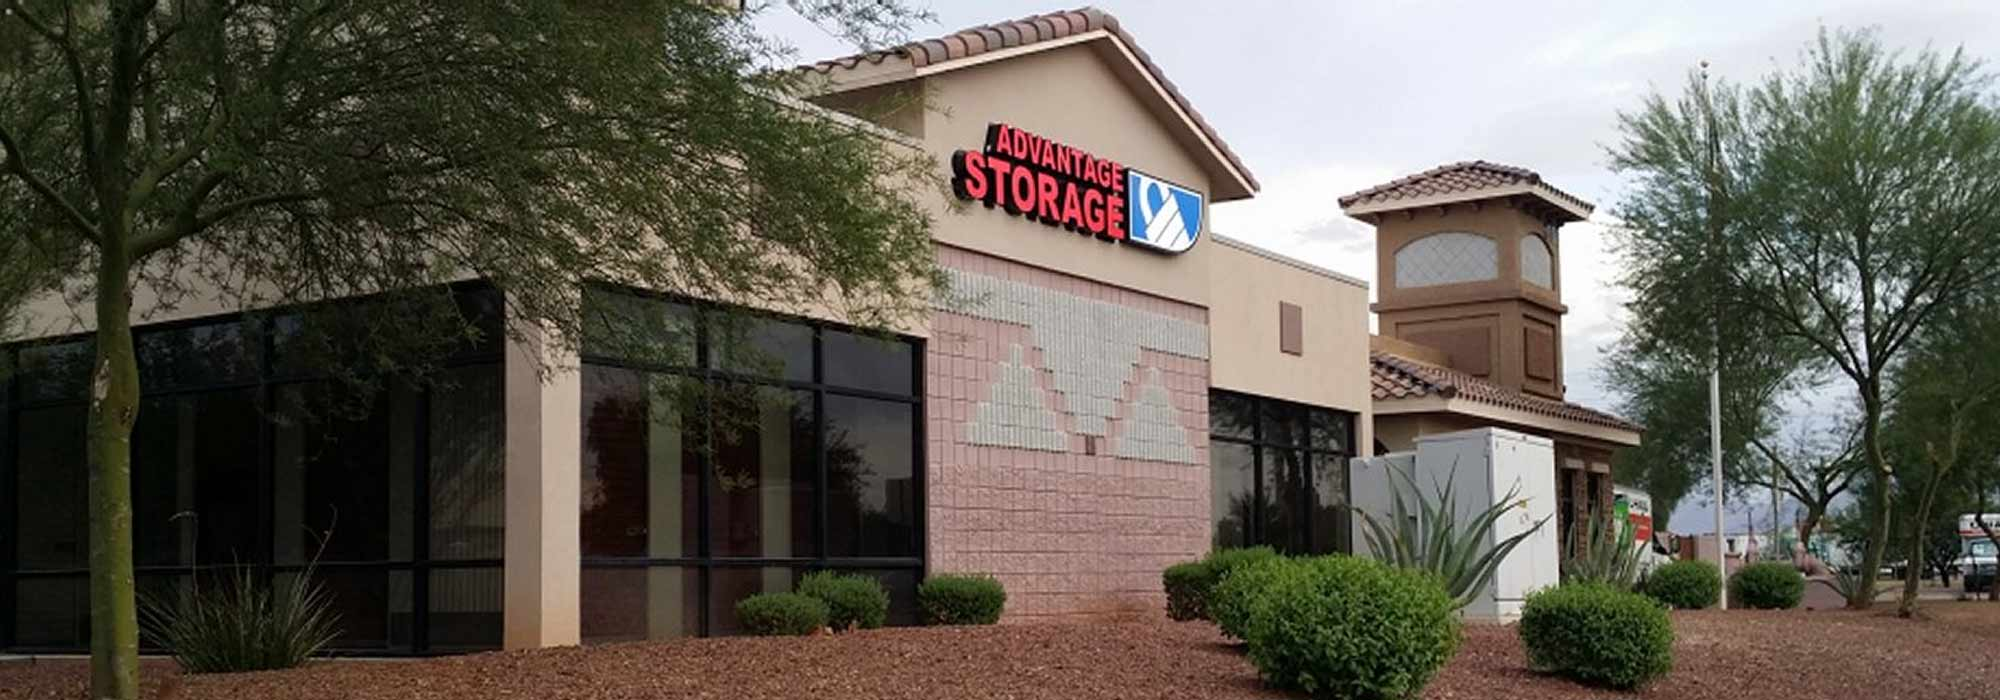 Self storage in Avondale AZ